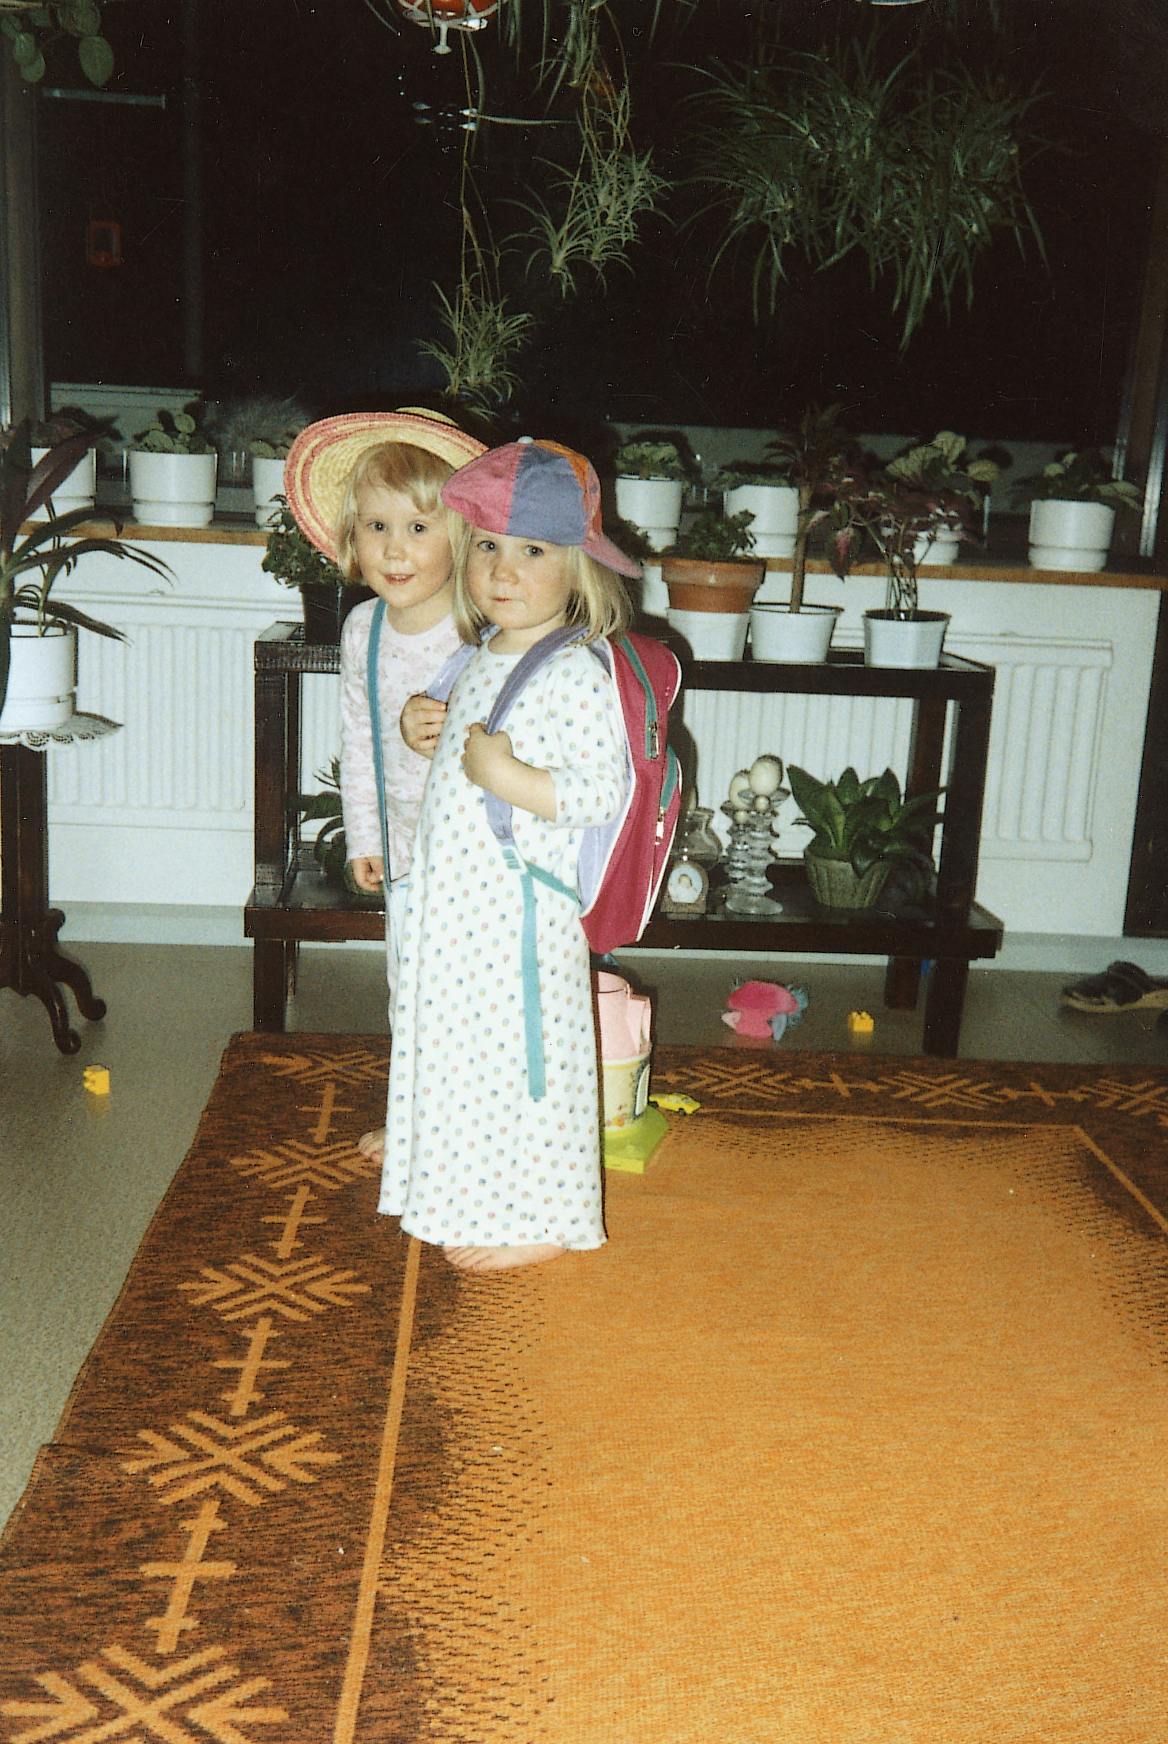 Me and my wee sister around 1995